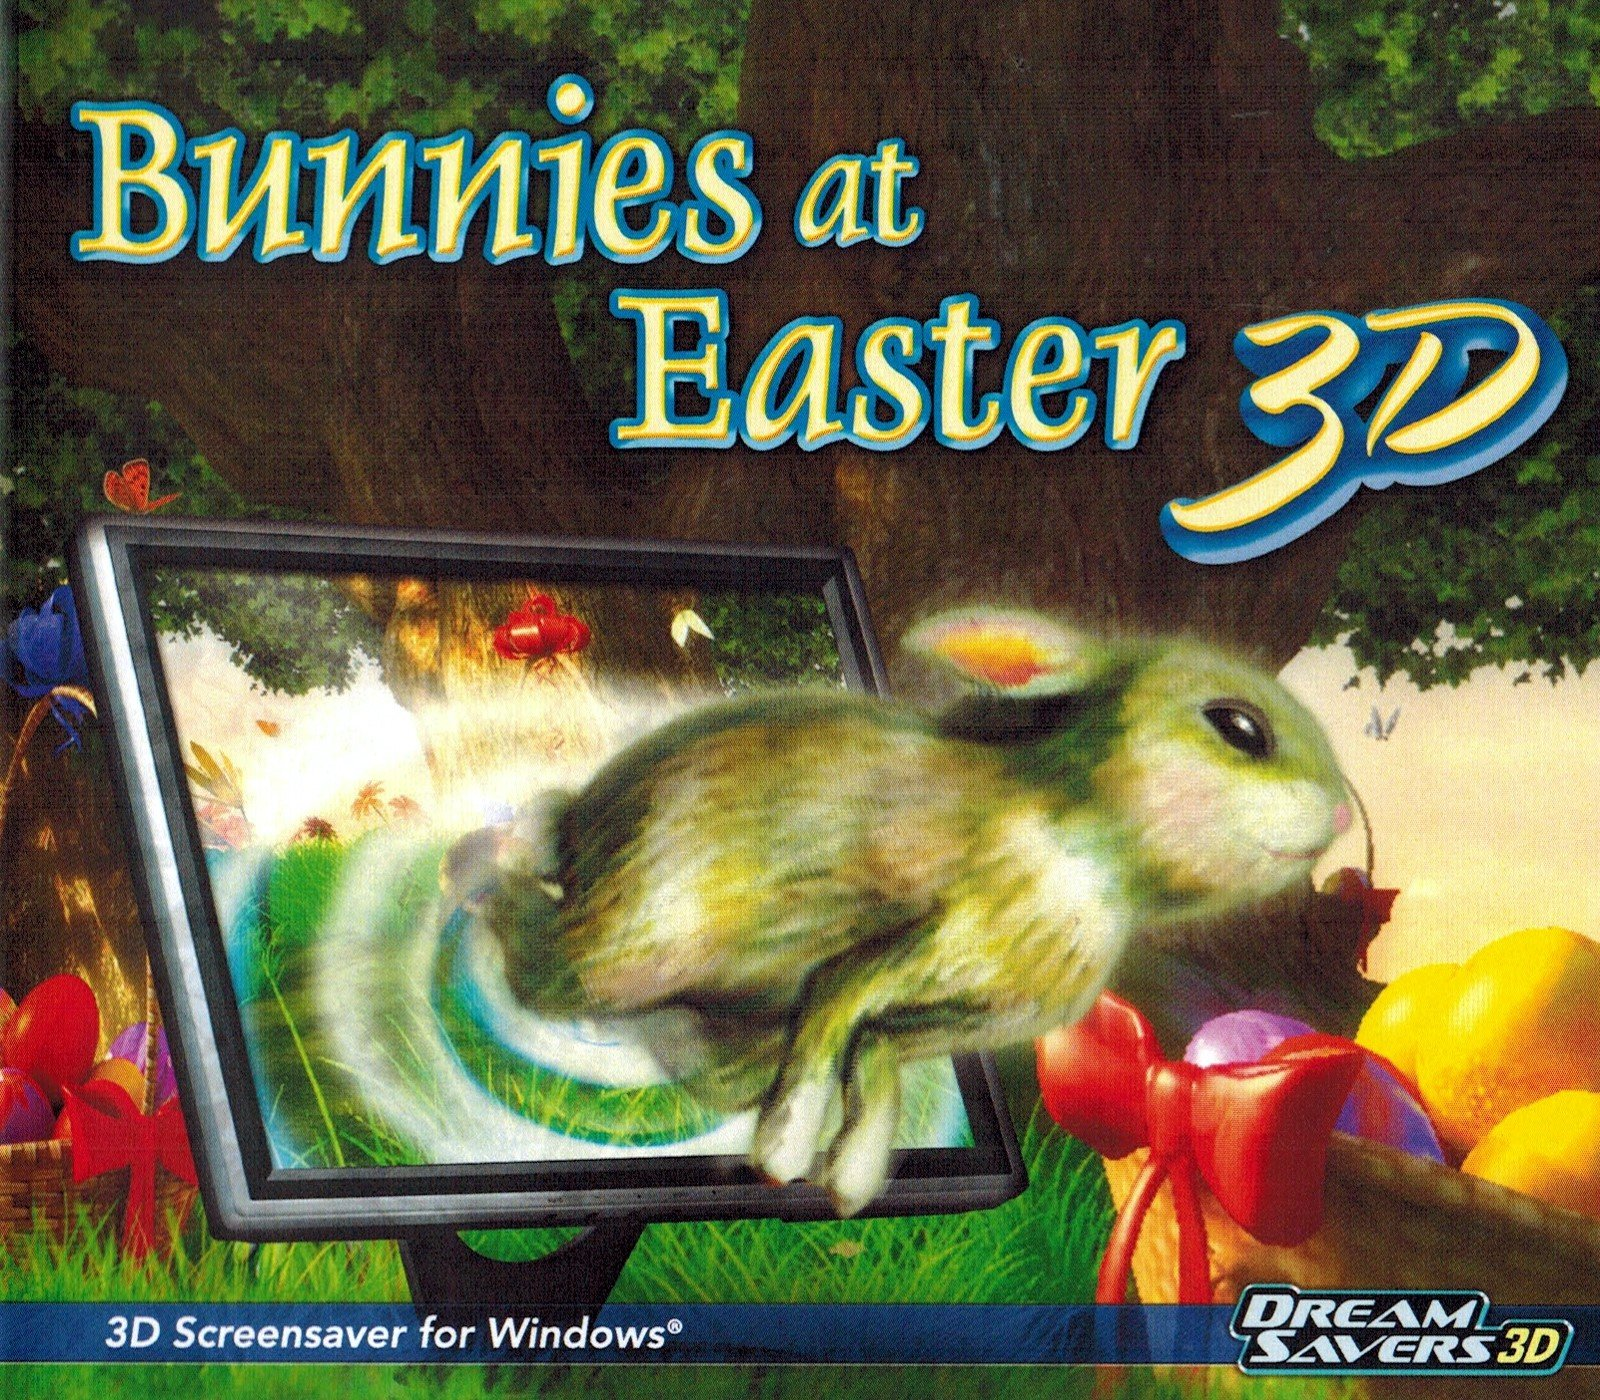 Bunnies at Easter 3D Screensaver by SelectSoft Publishing